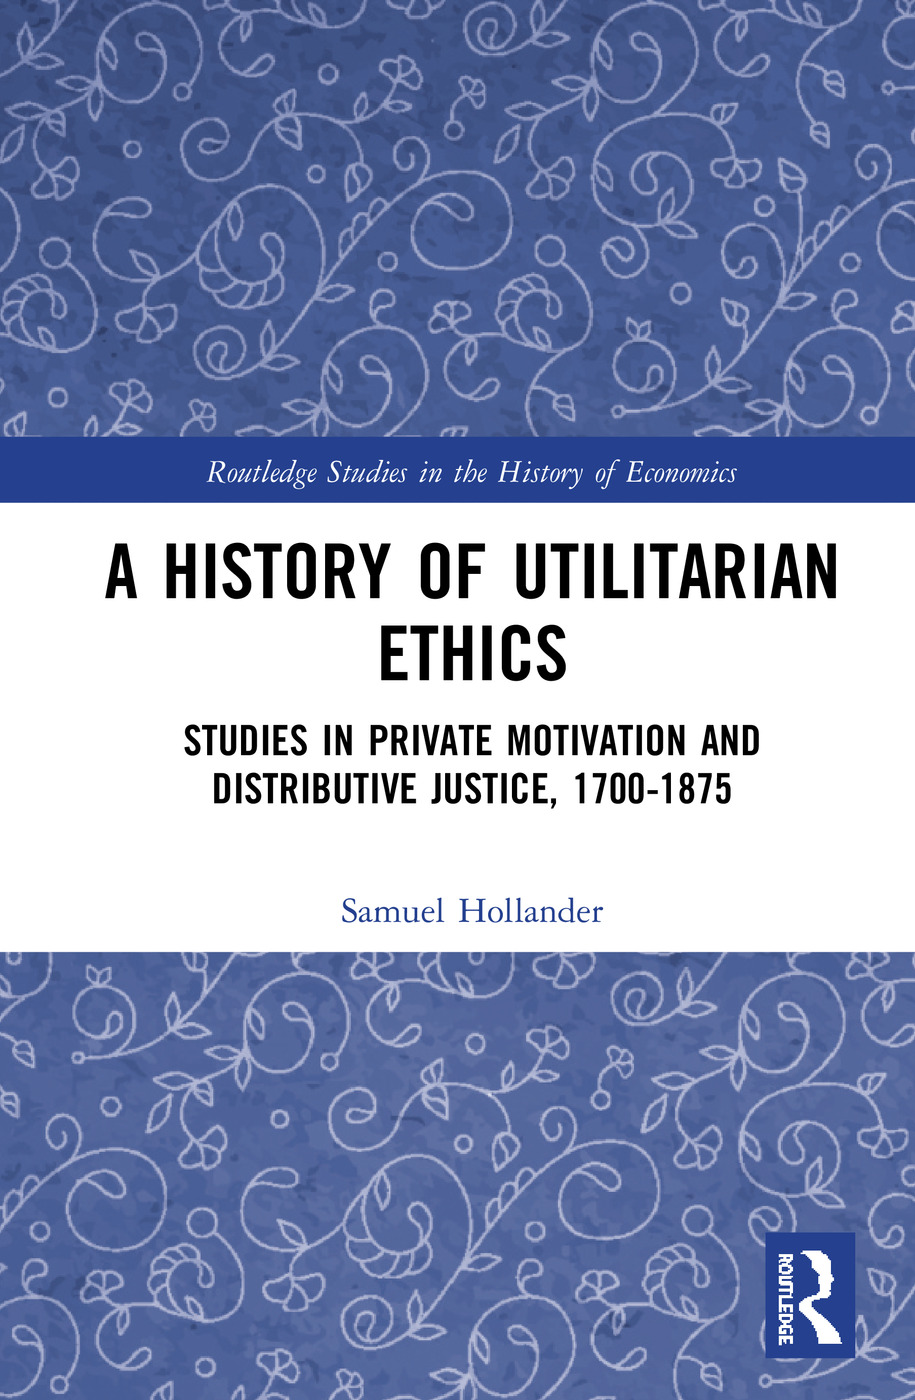 A History of Utilitarian Ethics: Studies in Private Motivation and Distributive Justice, 1700-1875 book cover